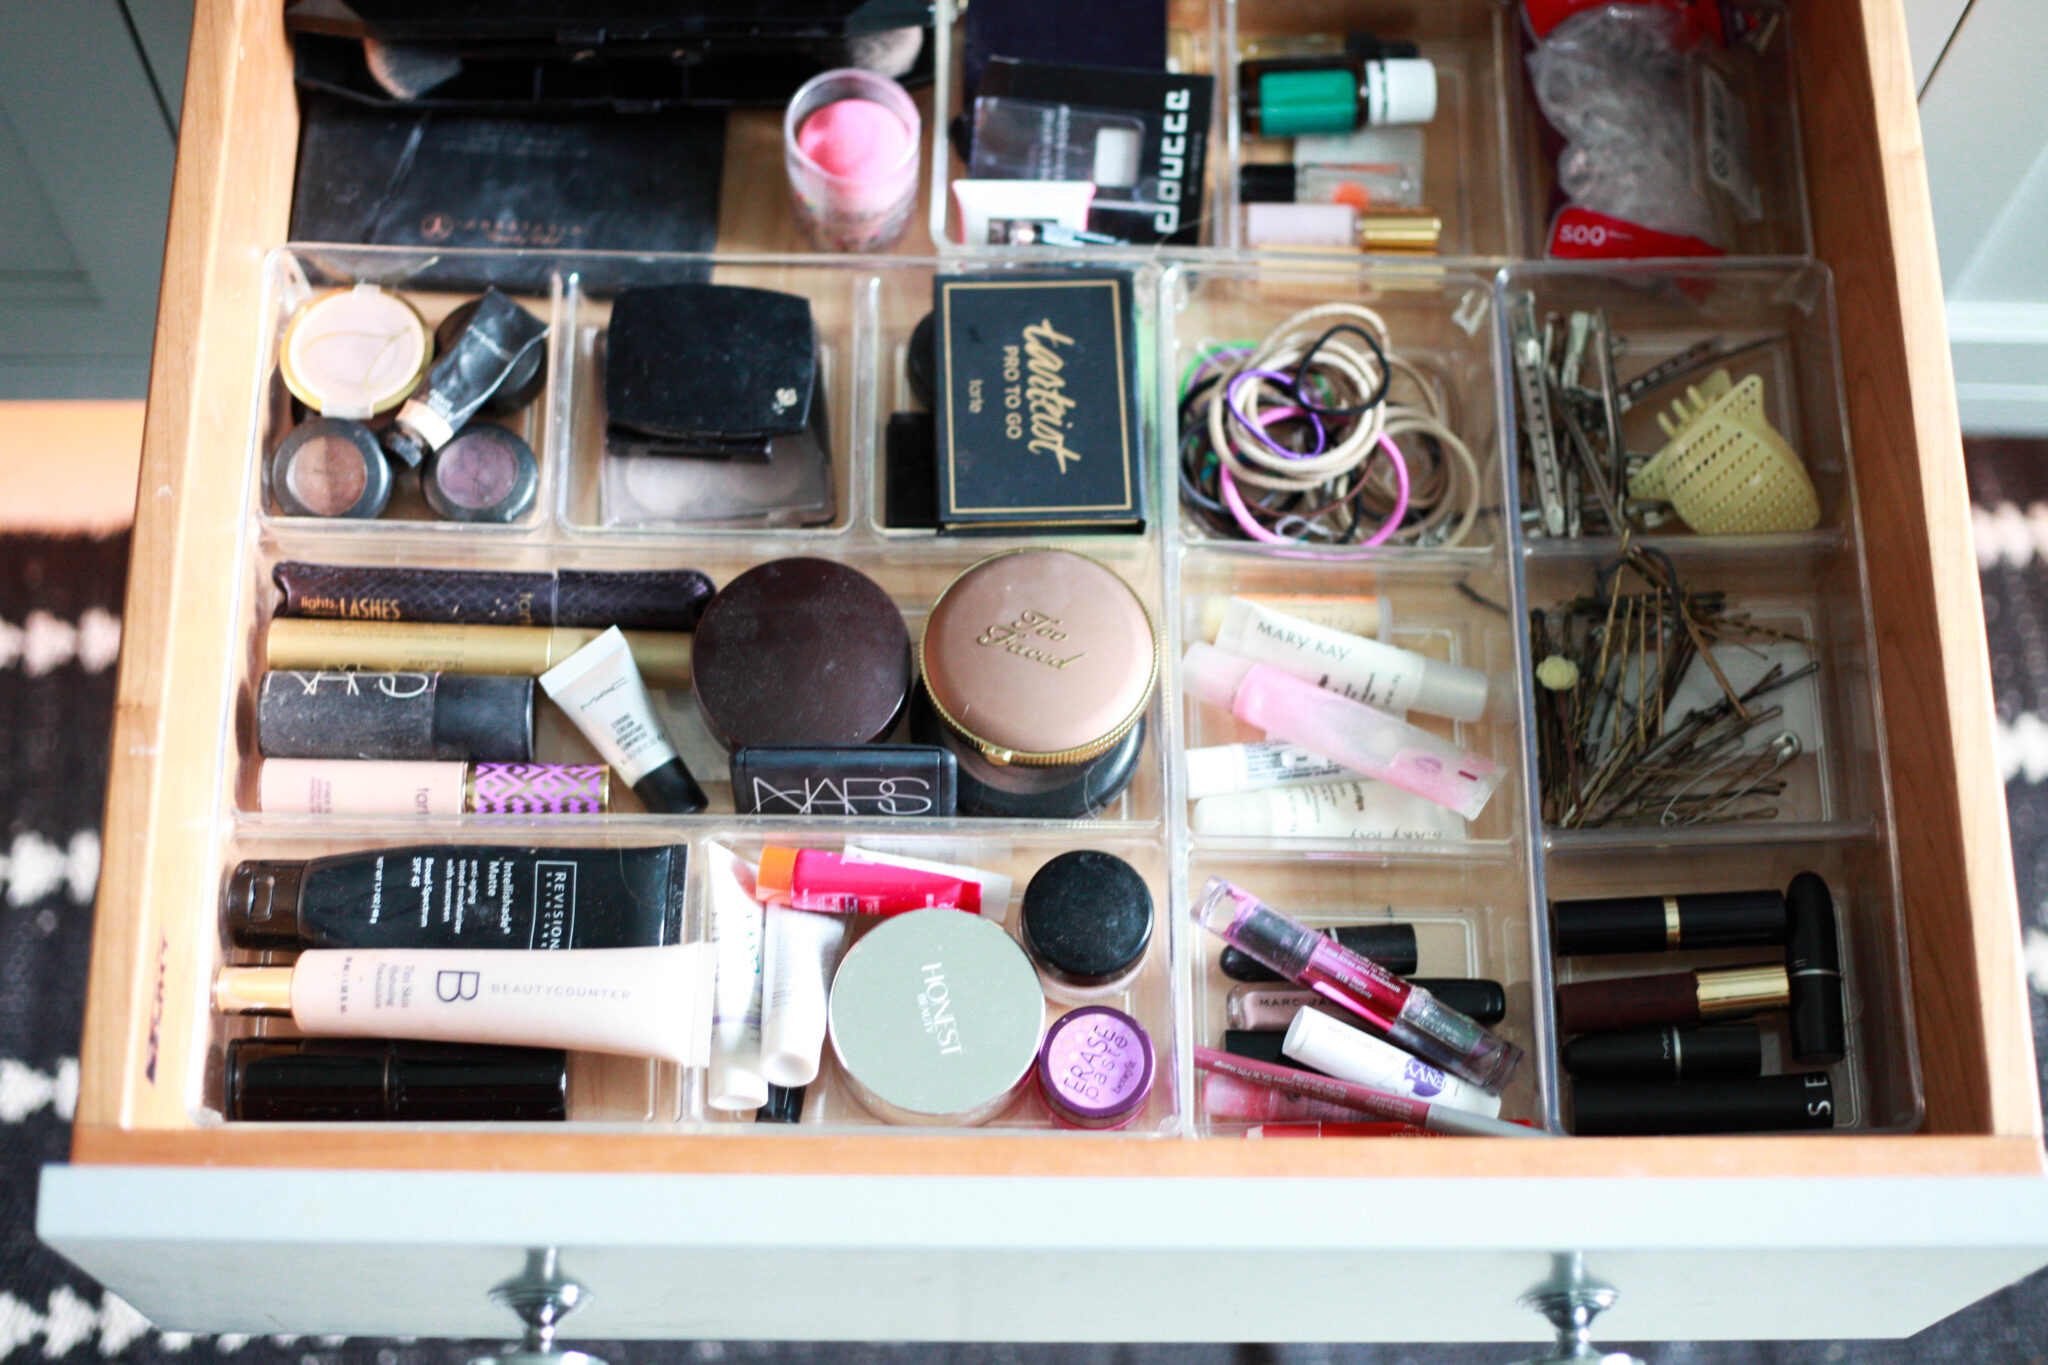 Organized Makeup Drawer Organized Makeup Drawer Organized Makeup Drawer